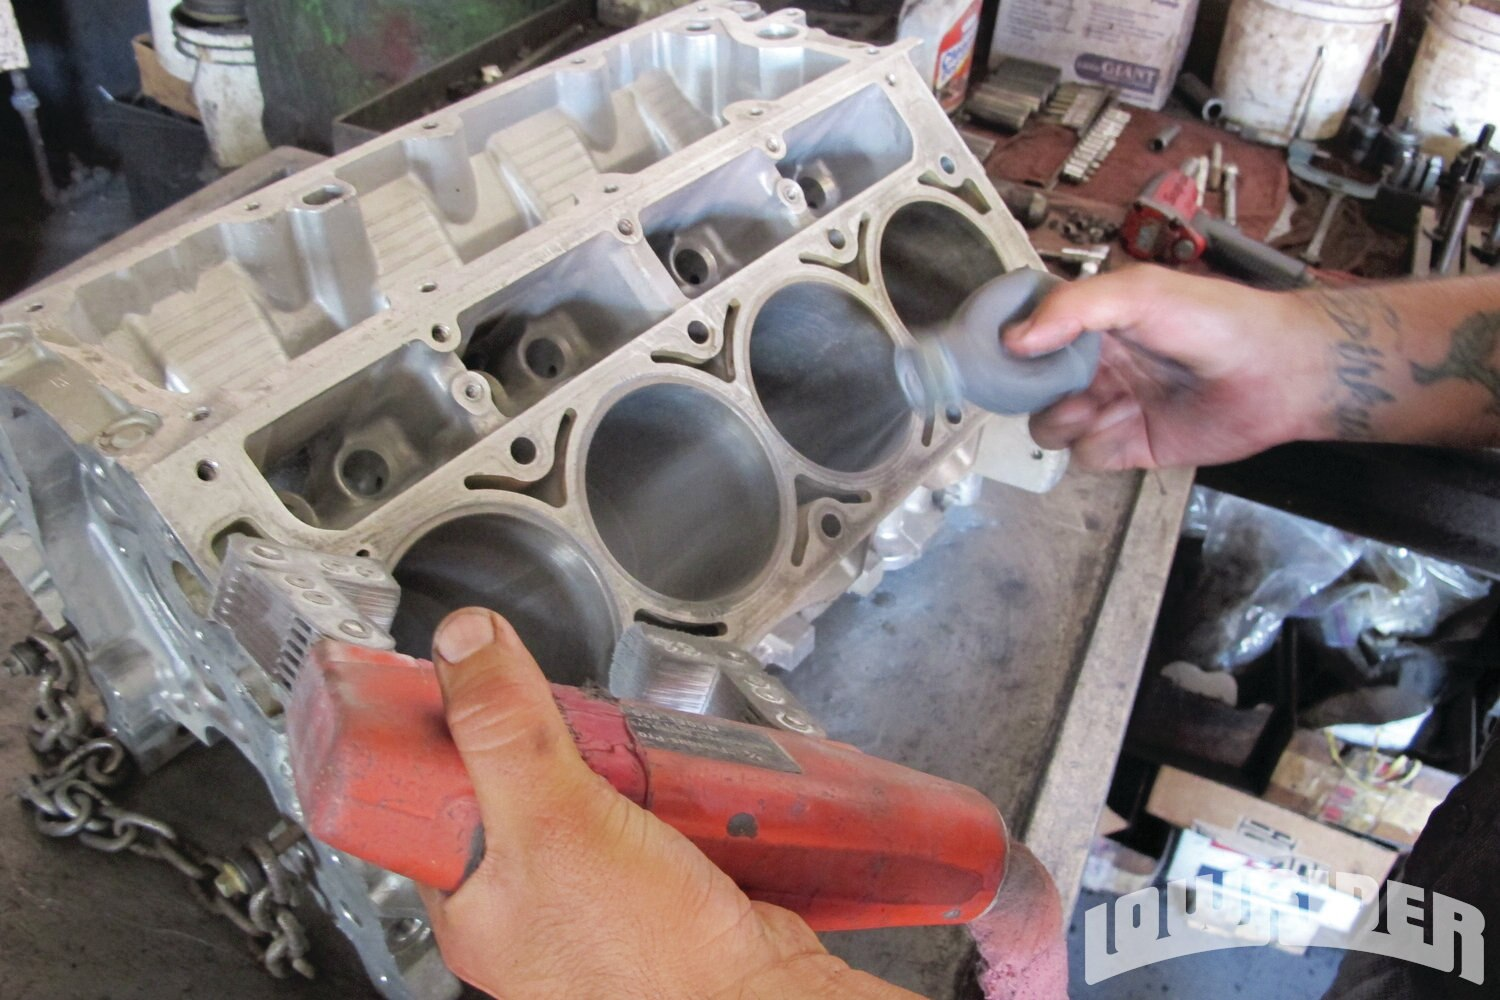 <strong>11</strong>. Here is a look at how the magnetized engine block attracts the magnetic powder.